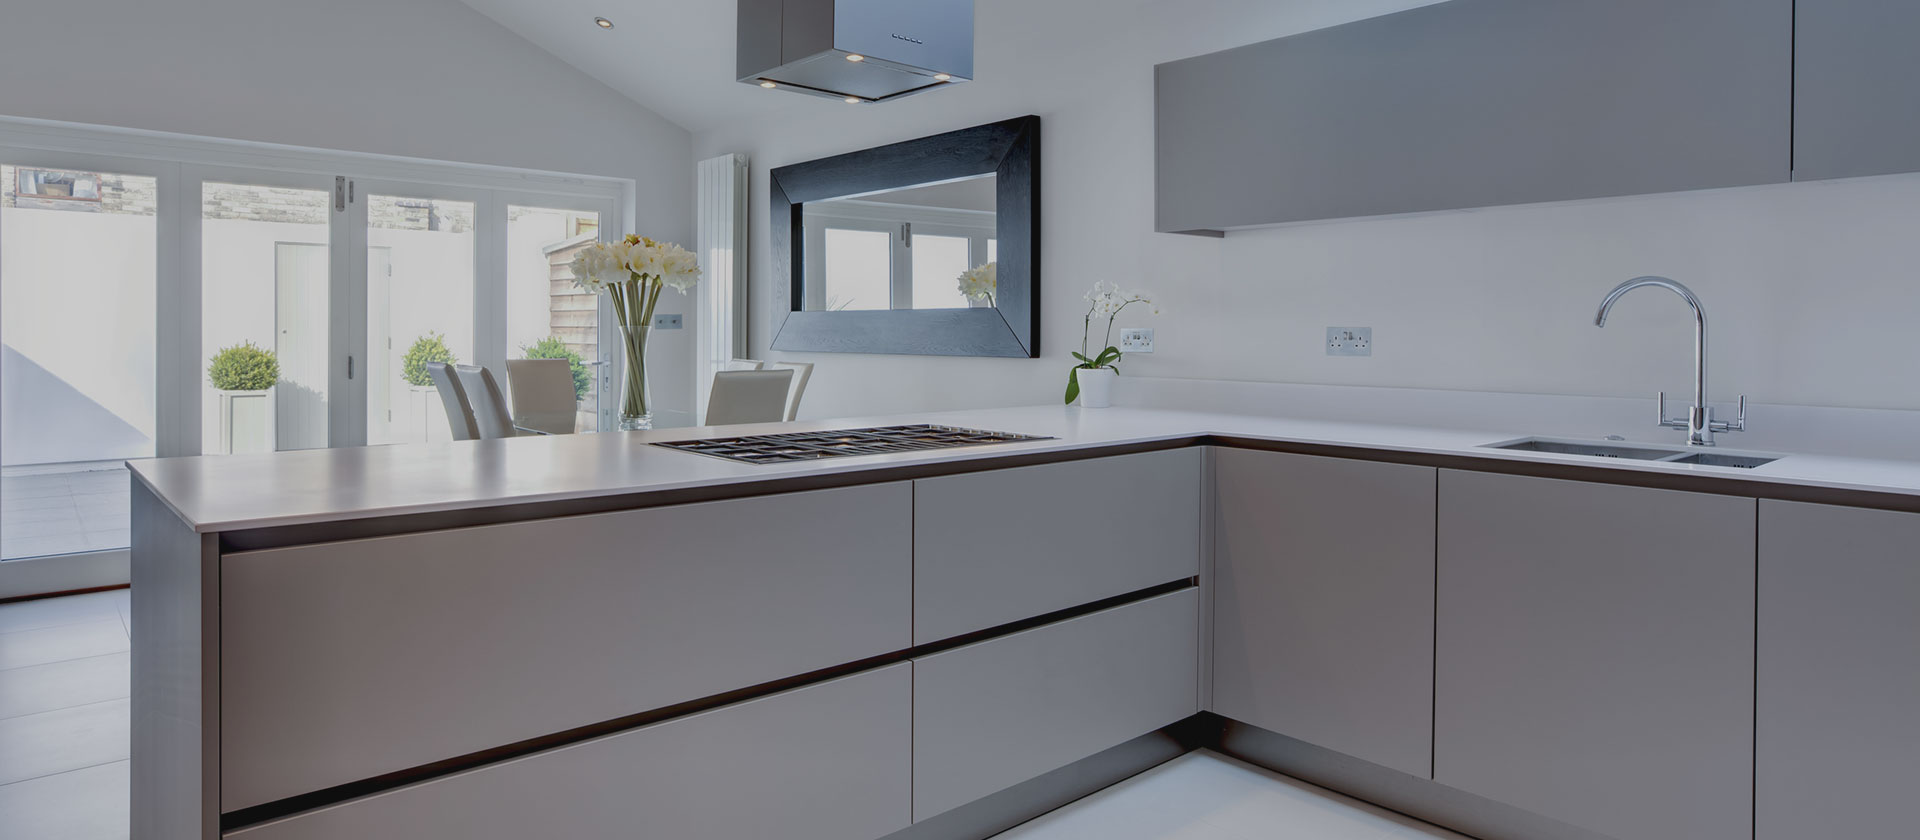 accesskeyid seattle kitchen cabinets alloworigin closets disposition vanities contemporary